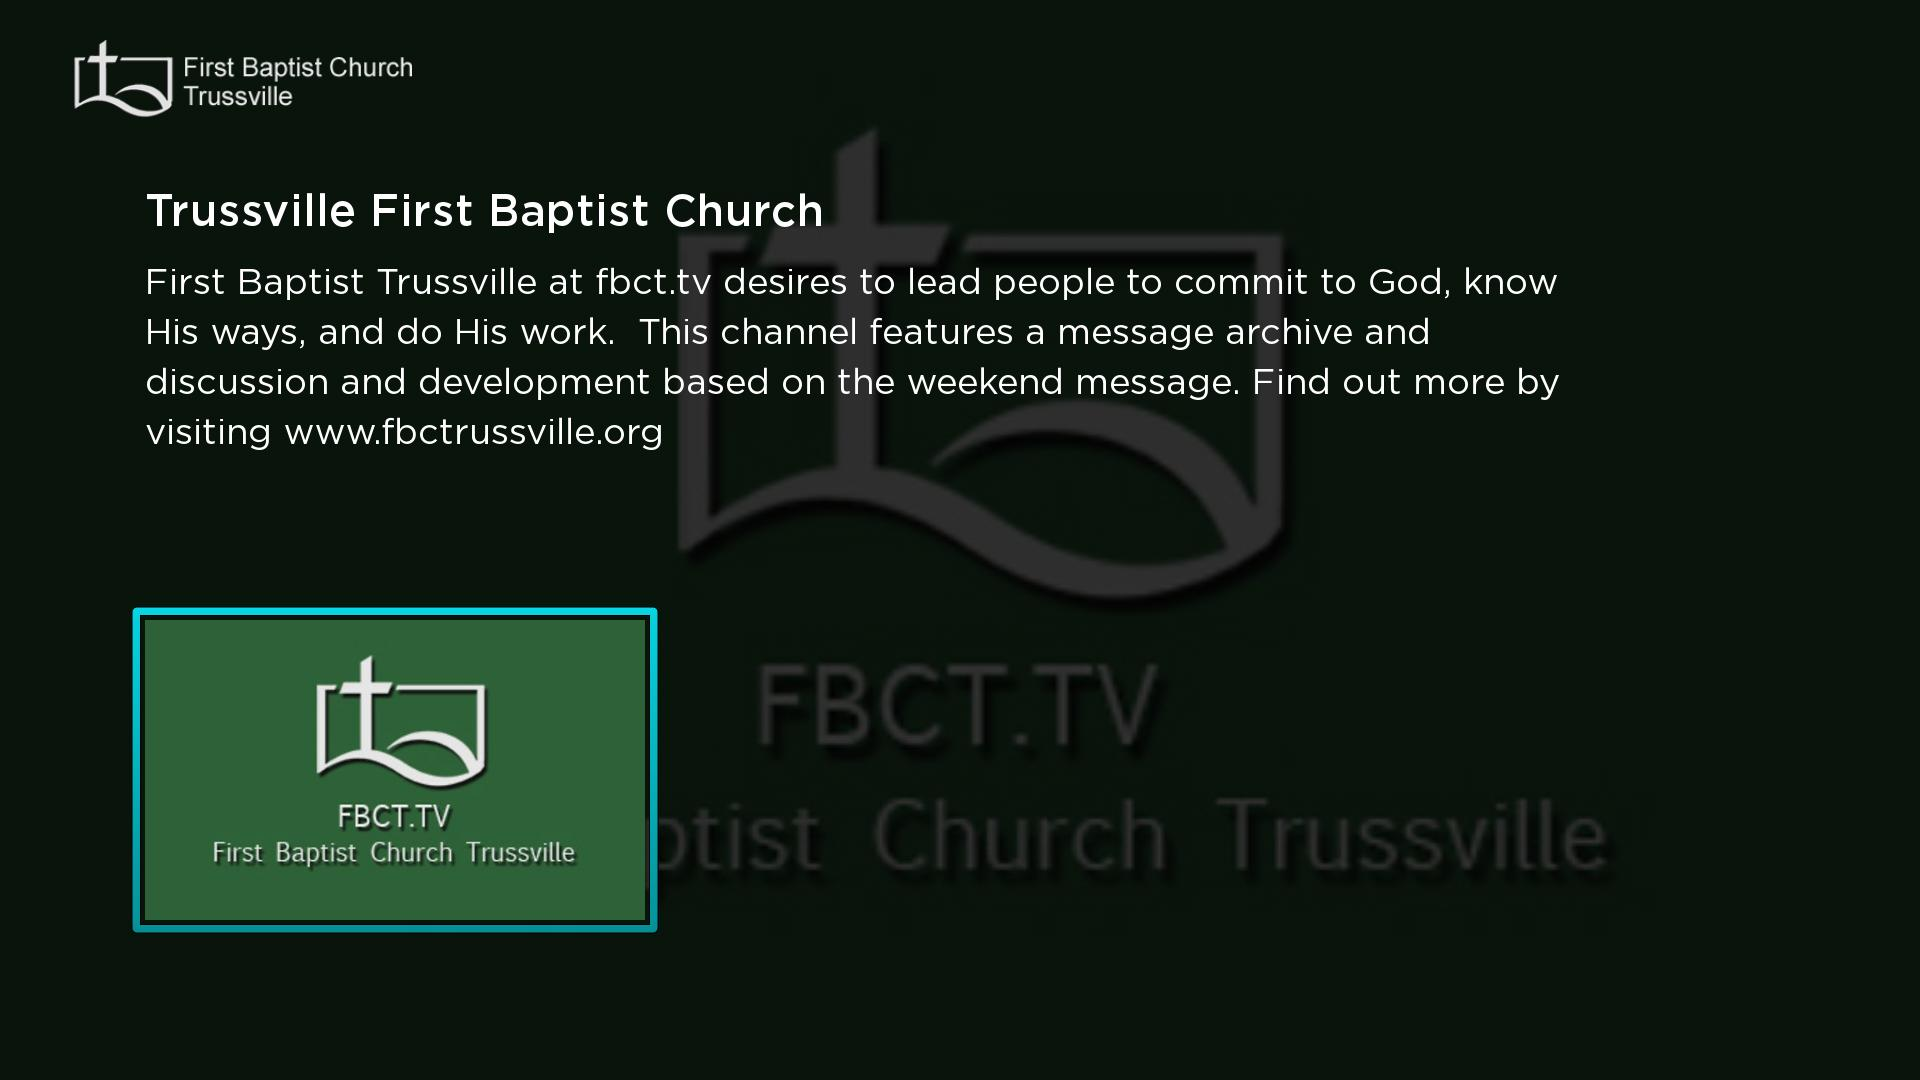 1st Baptist Church Trussville Screenshot 001